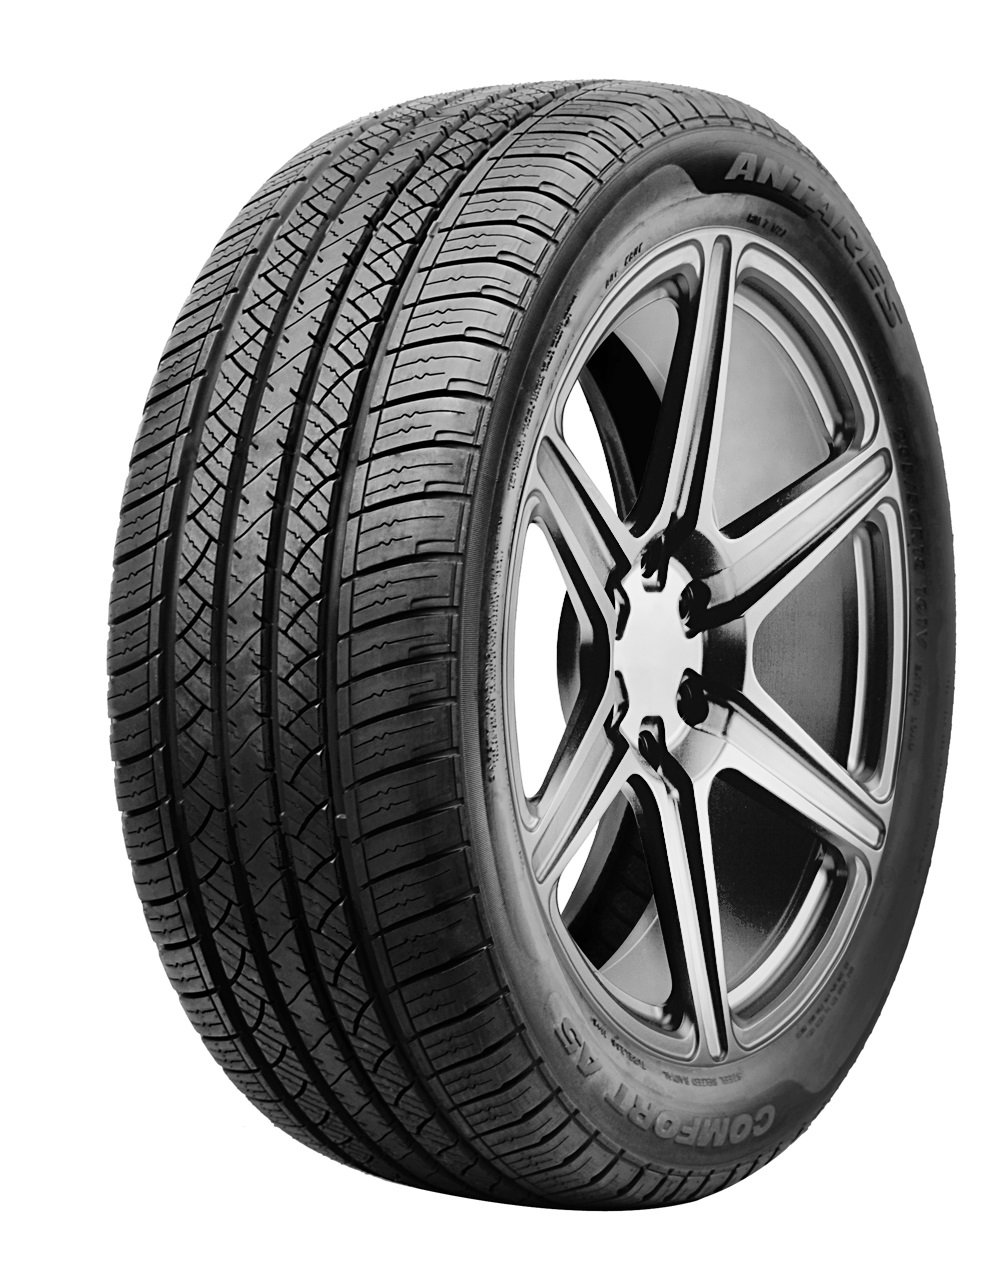 Antares COMFORT A5 All-Season Radial Tire - 235/55R19 101V